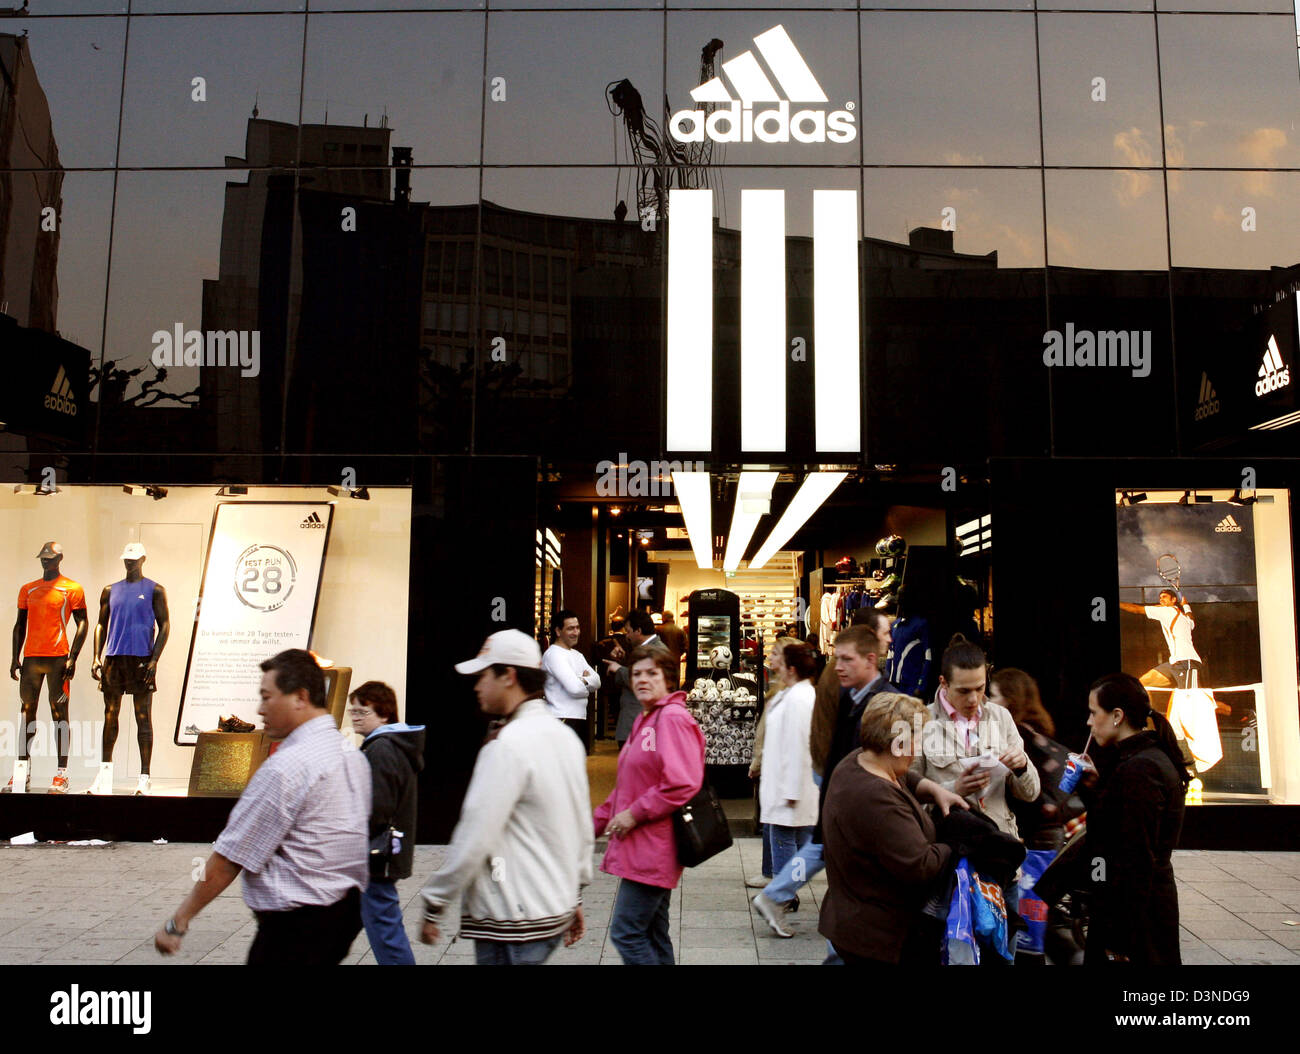 bisonte Fantástico De este modo  The picture shows consumers at the entrance to the Adidas store on Stock  Photo - Alamy